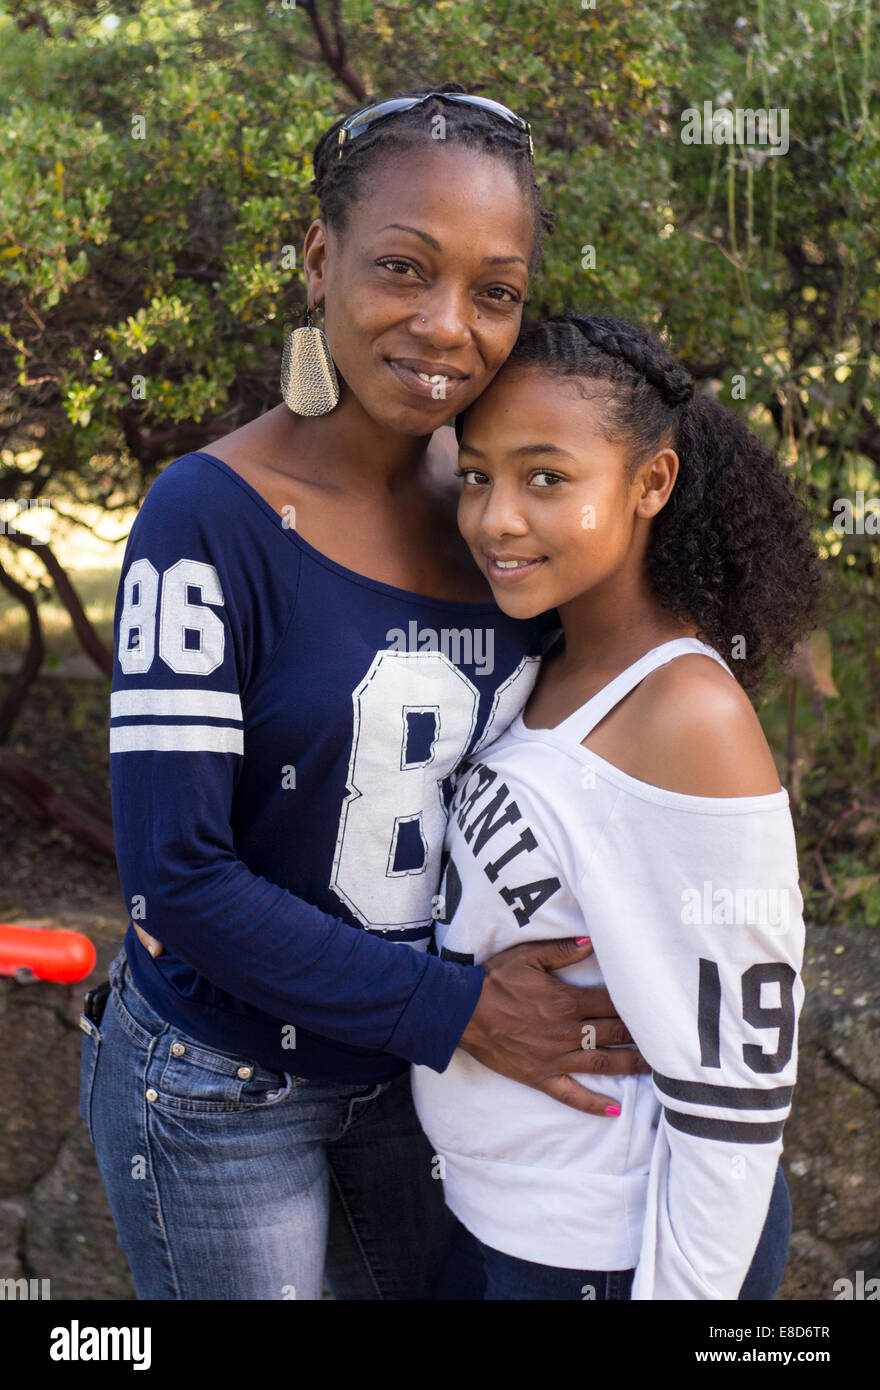 African-Americans, mother and daughter, birthday party, city of Santa Rosa, Santa Rosa, Sonoma County, California, - Stock Image